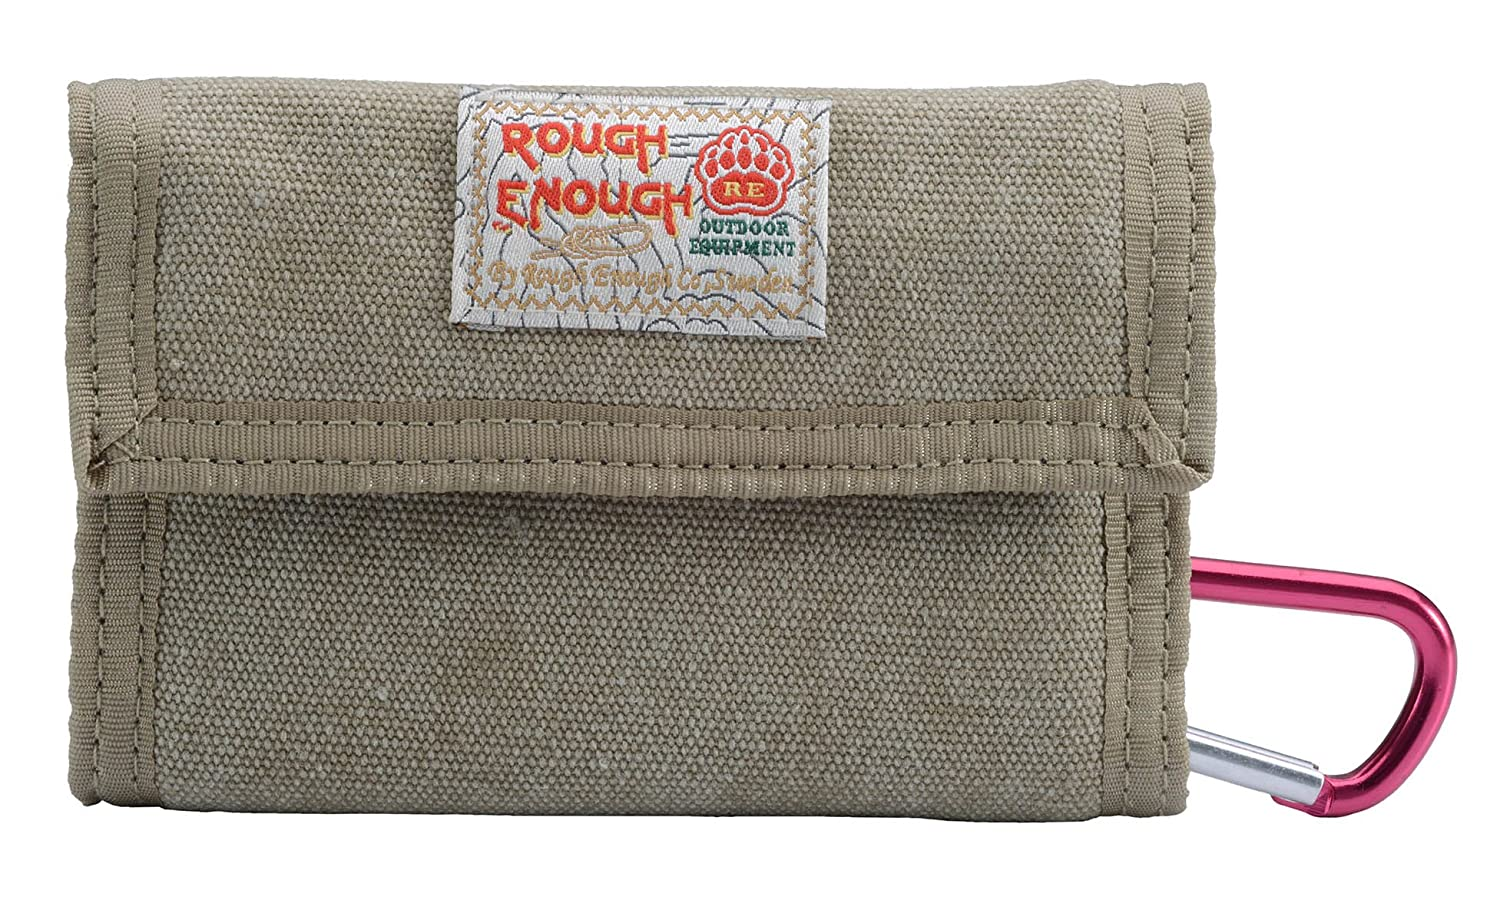 Rough Enough Classic Stylish Vintage Fancy Portable Large Capacity Trifold Heavy Canvas Wallet Coins Purse Credit Card Holder Organizer Case with Zippered Pocket for Kid Boy Man Outdoor Travel School ROUGH ENOUGH INC. RE8002-4-6